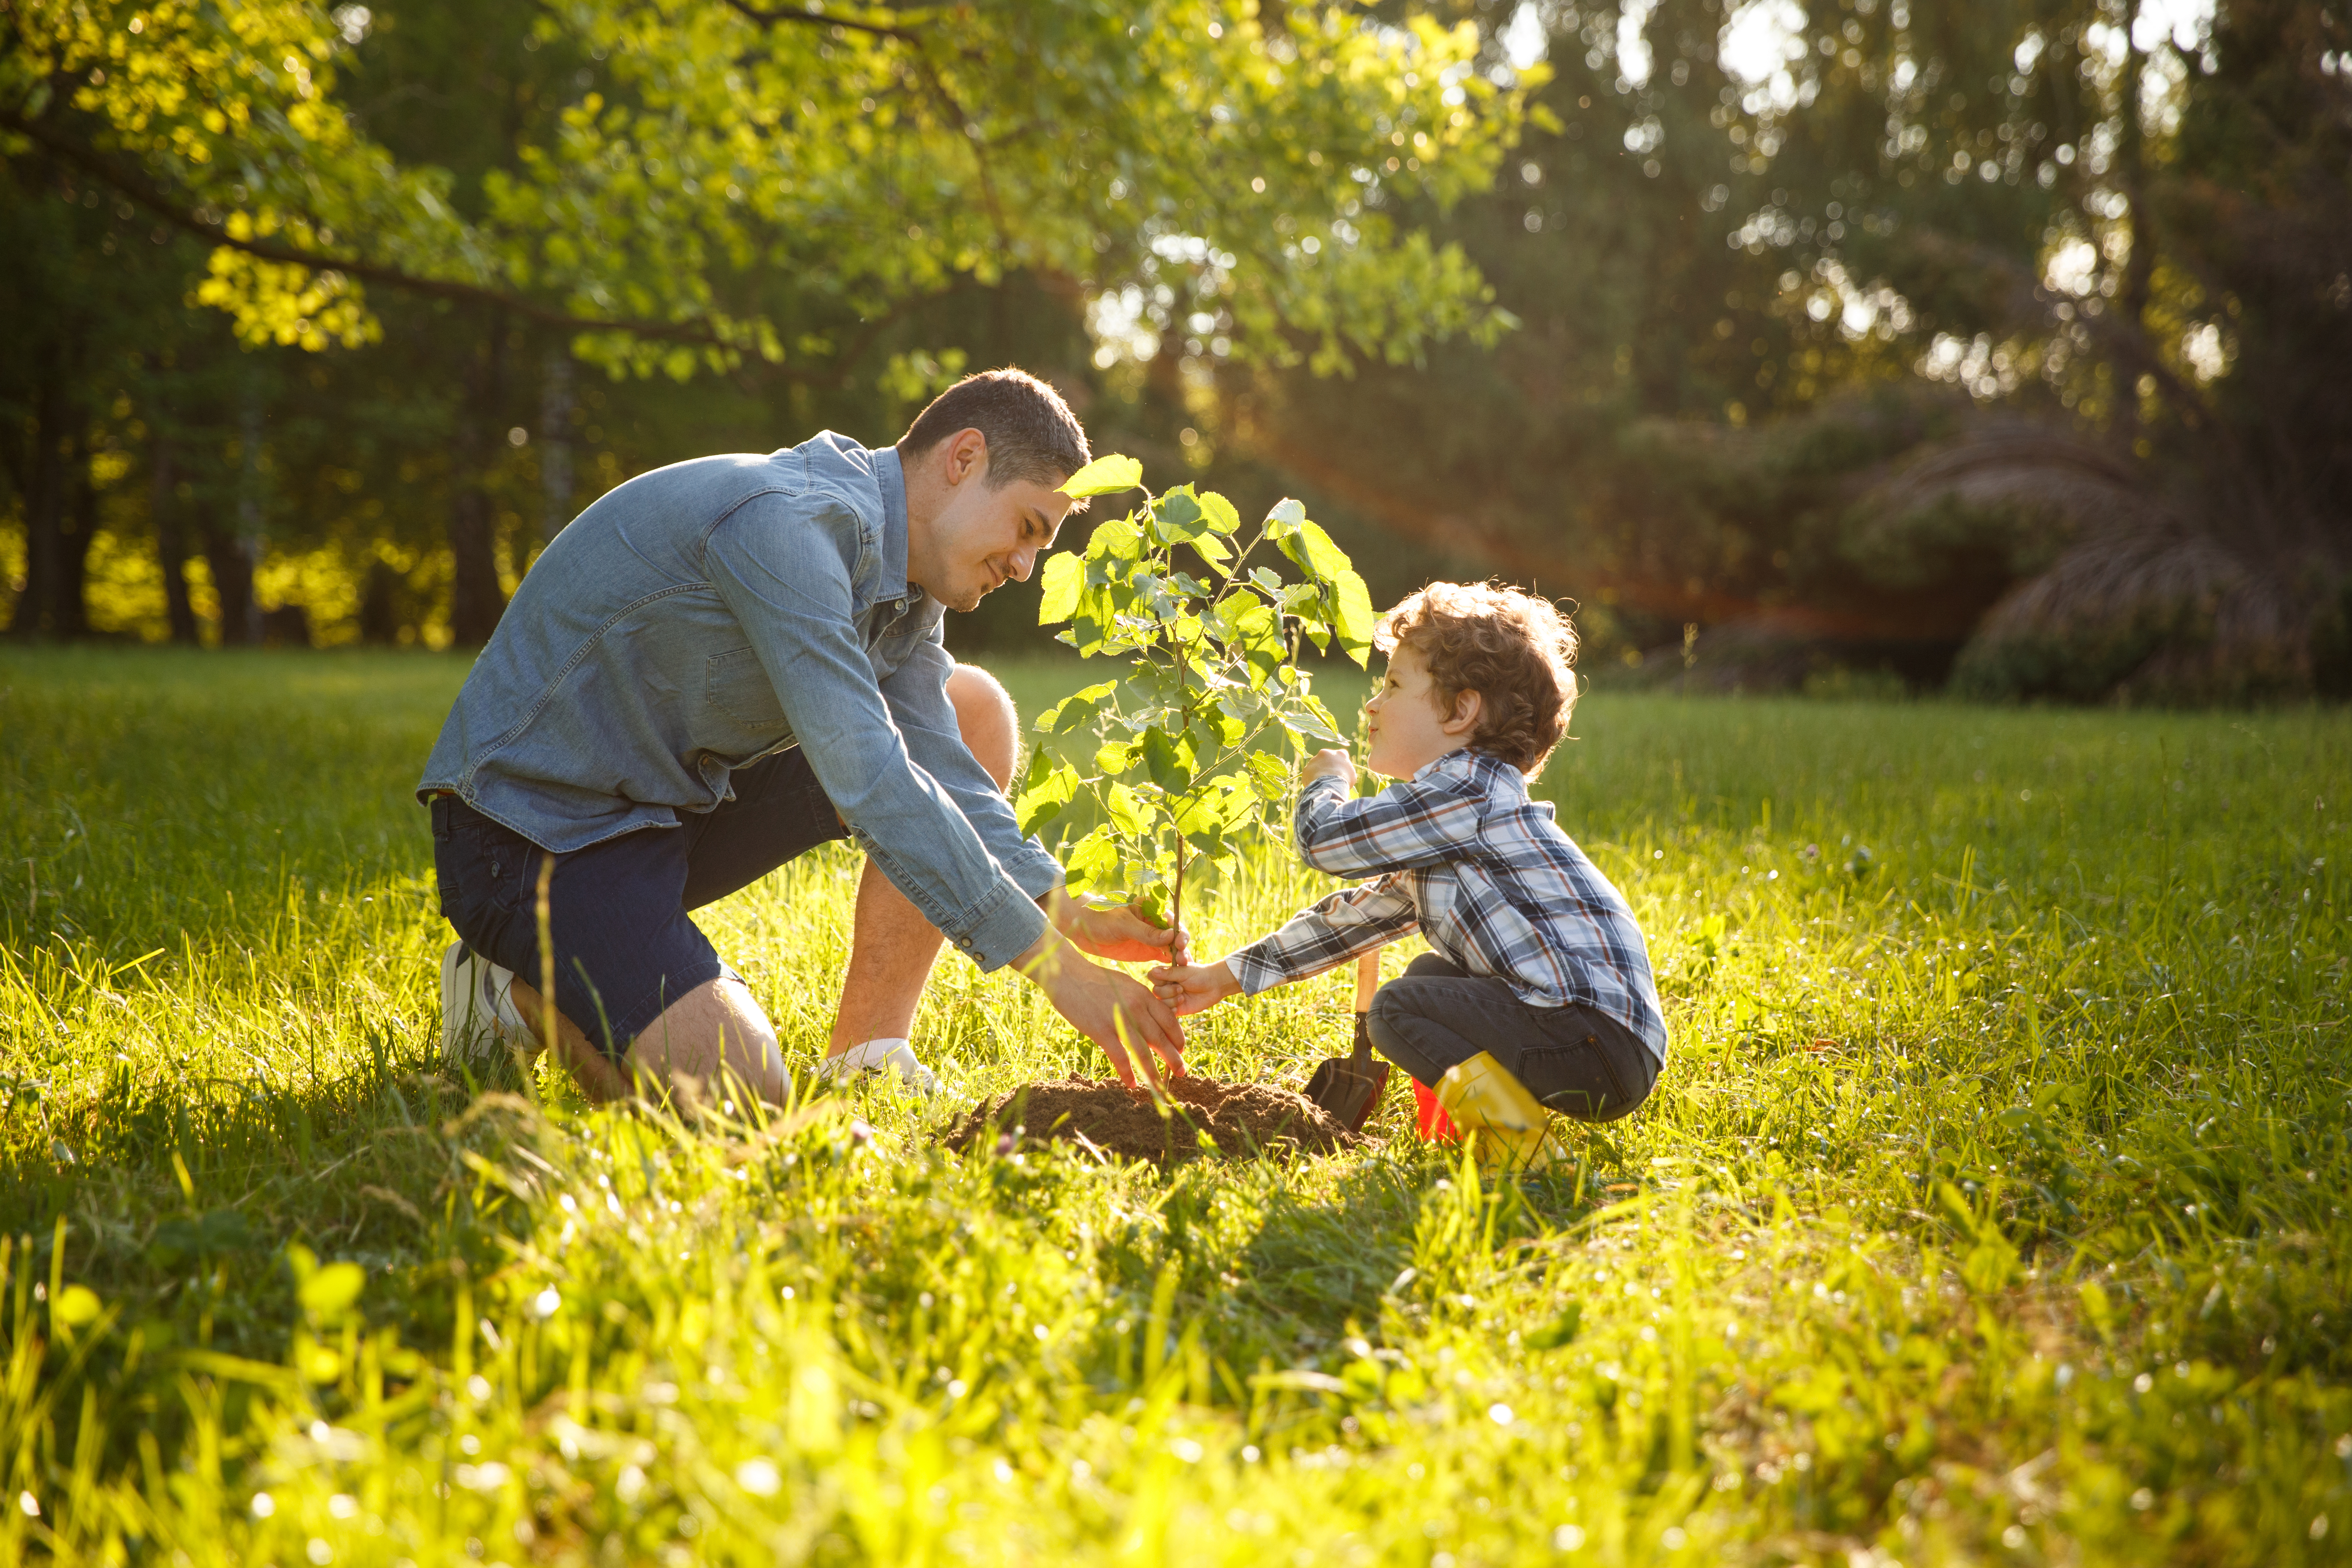 How to Get Rid of Tree Sprouts in Grass | Home Guides | SF Gate